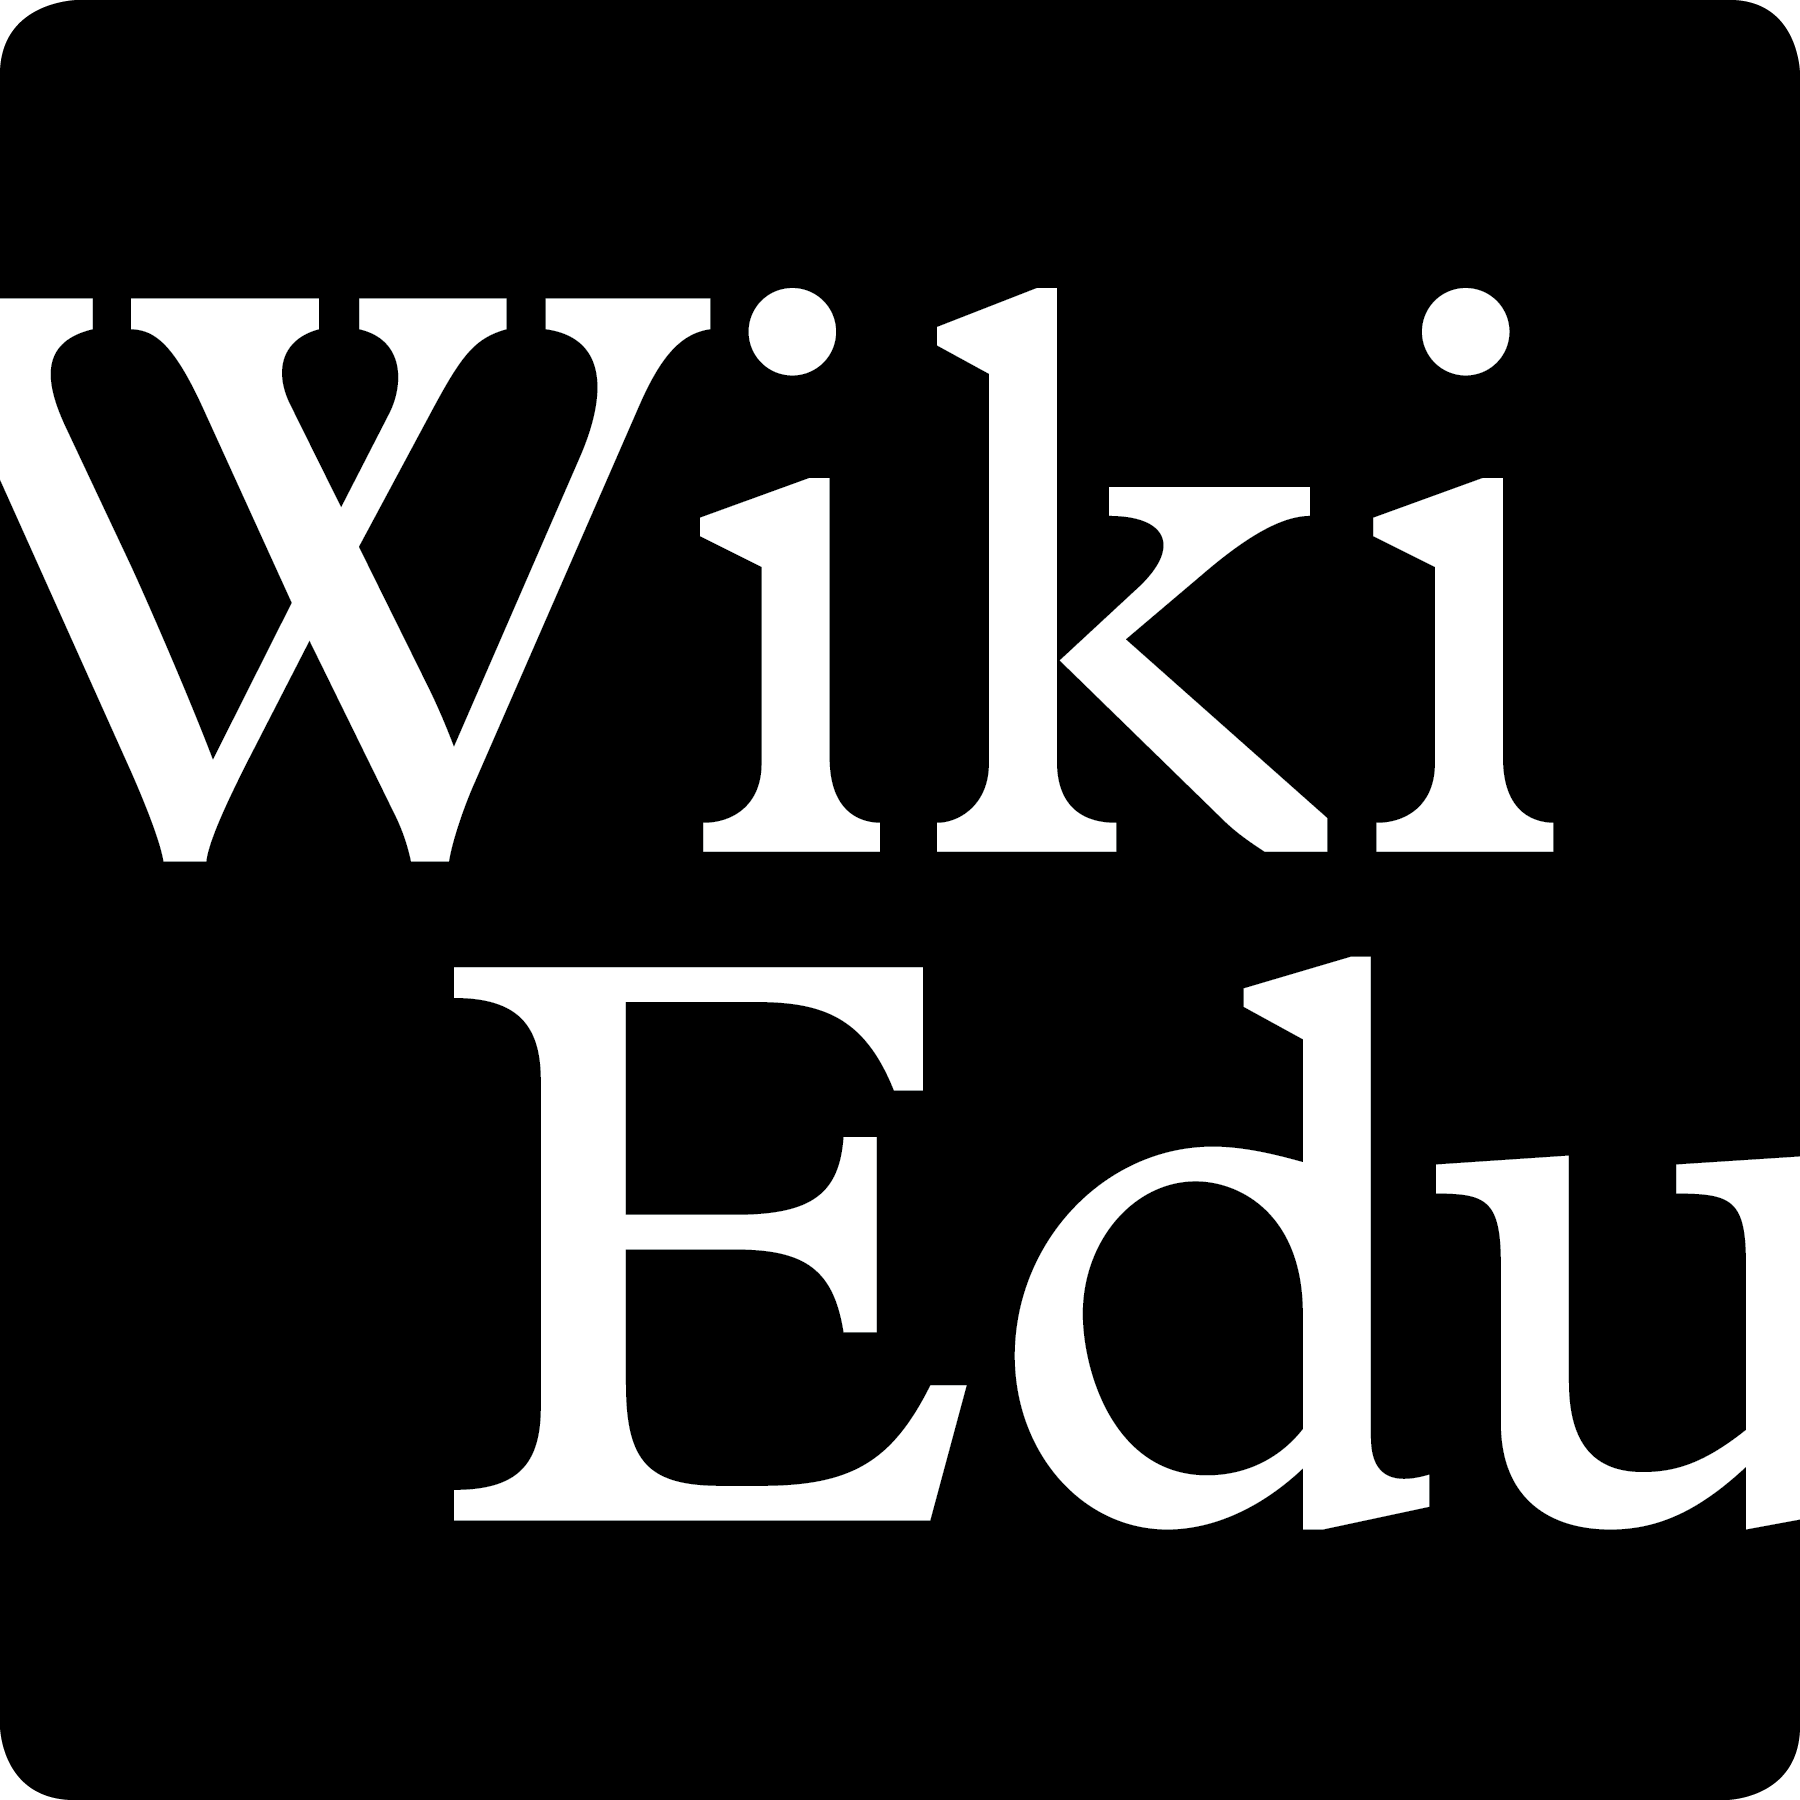 Wiki Education Foundation